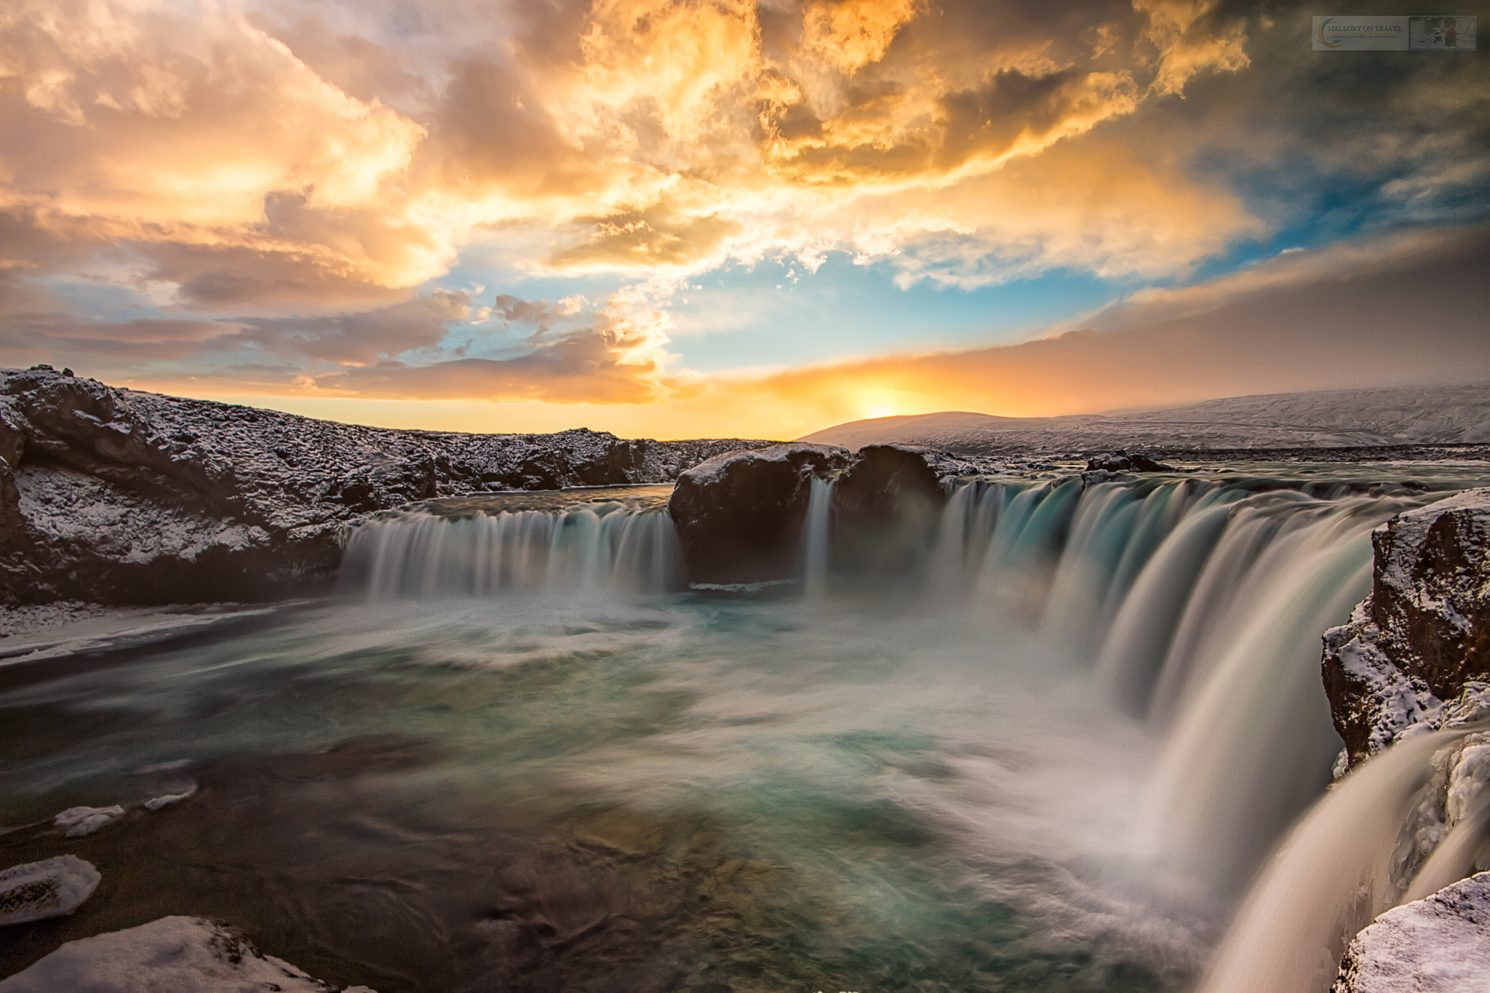 Winter at Gođafoss, the waterfall of the gods on the Skjálfandaflót River in Iceland, the Land of Fire and Ice on Mallory on Travel adventure travel, photography, travel Iain Mallory_Iceland 003